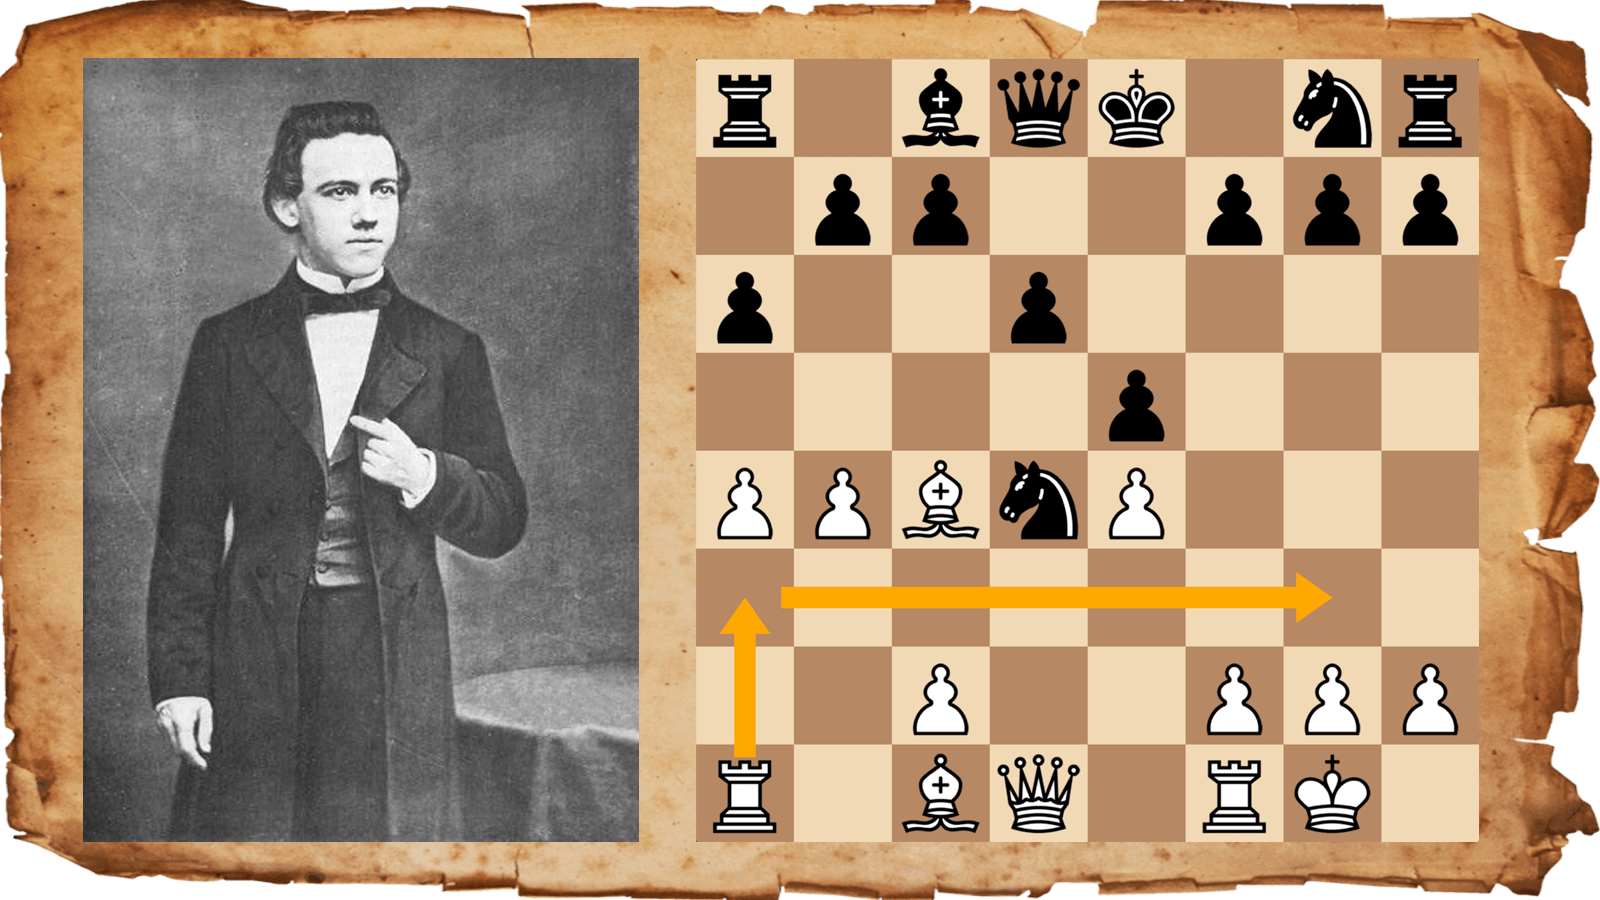 The Rook Lift Paul Morphy S Last Gift To Chess Chess Com